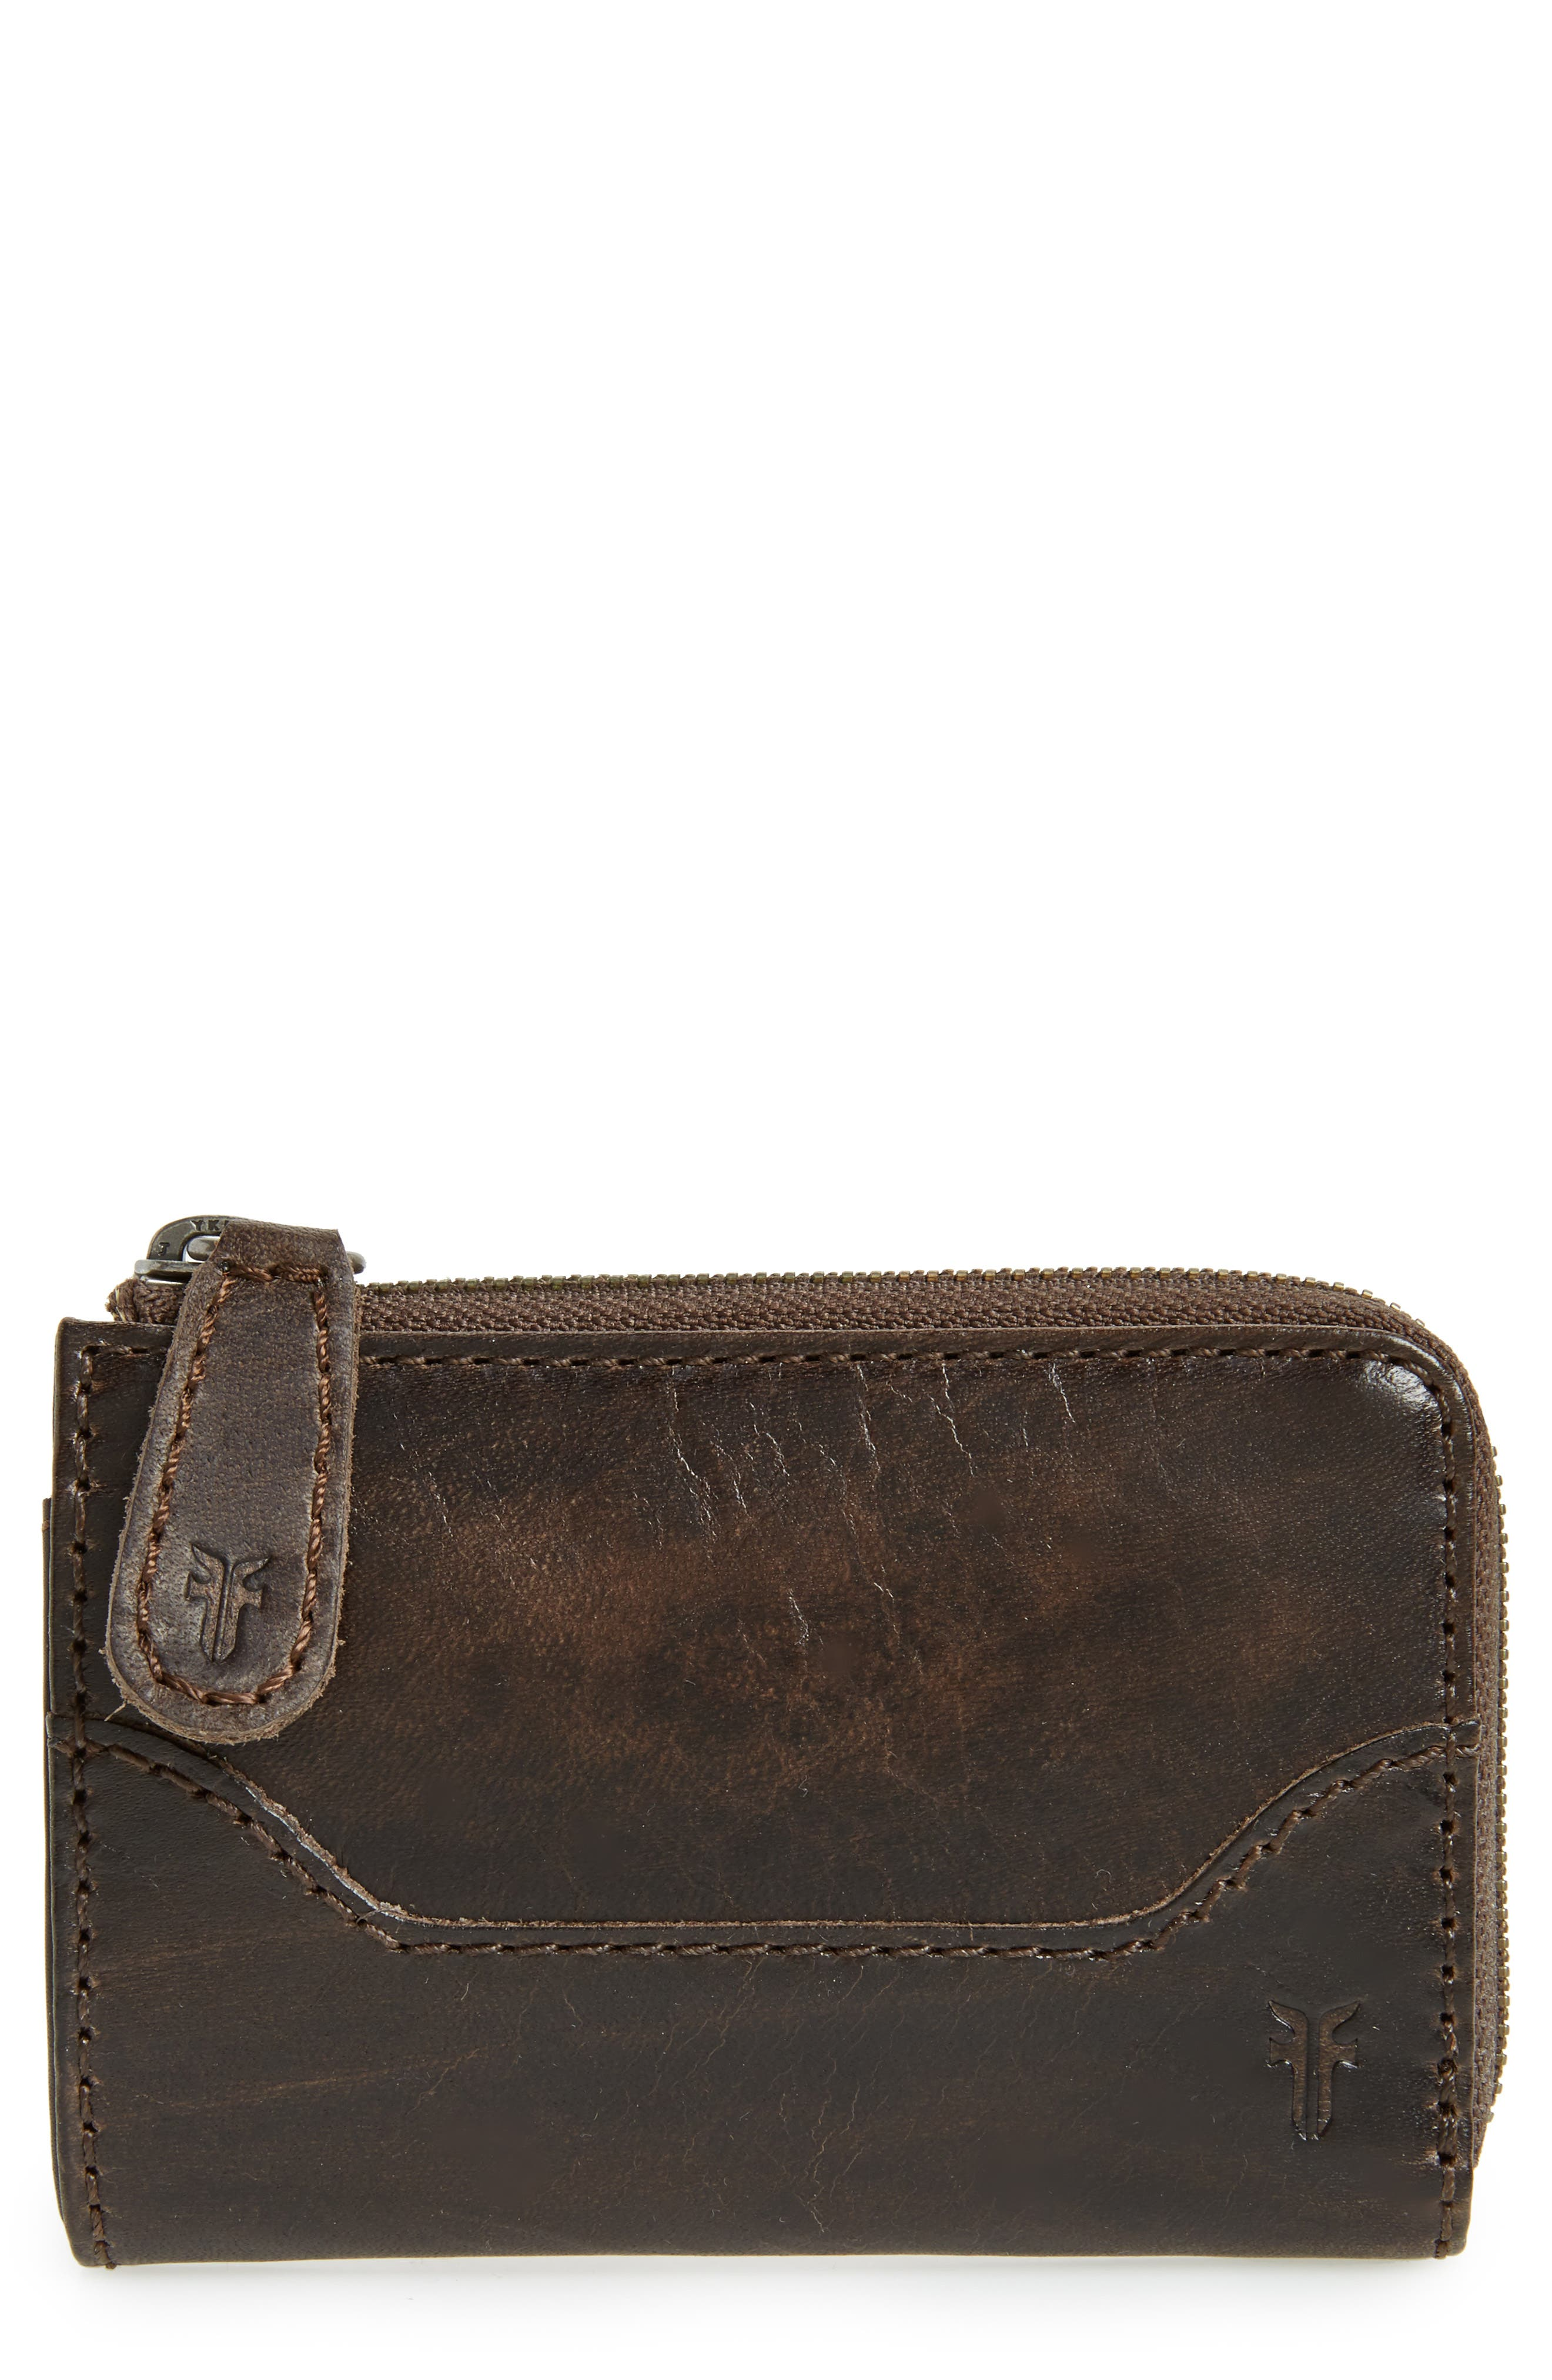 Small Melissa Leather Zip Wallet,                         Main,                         color, Slate